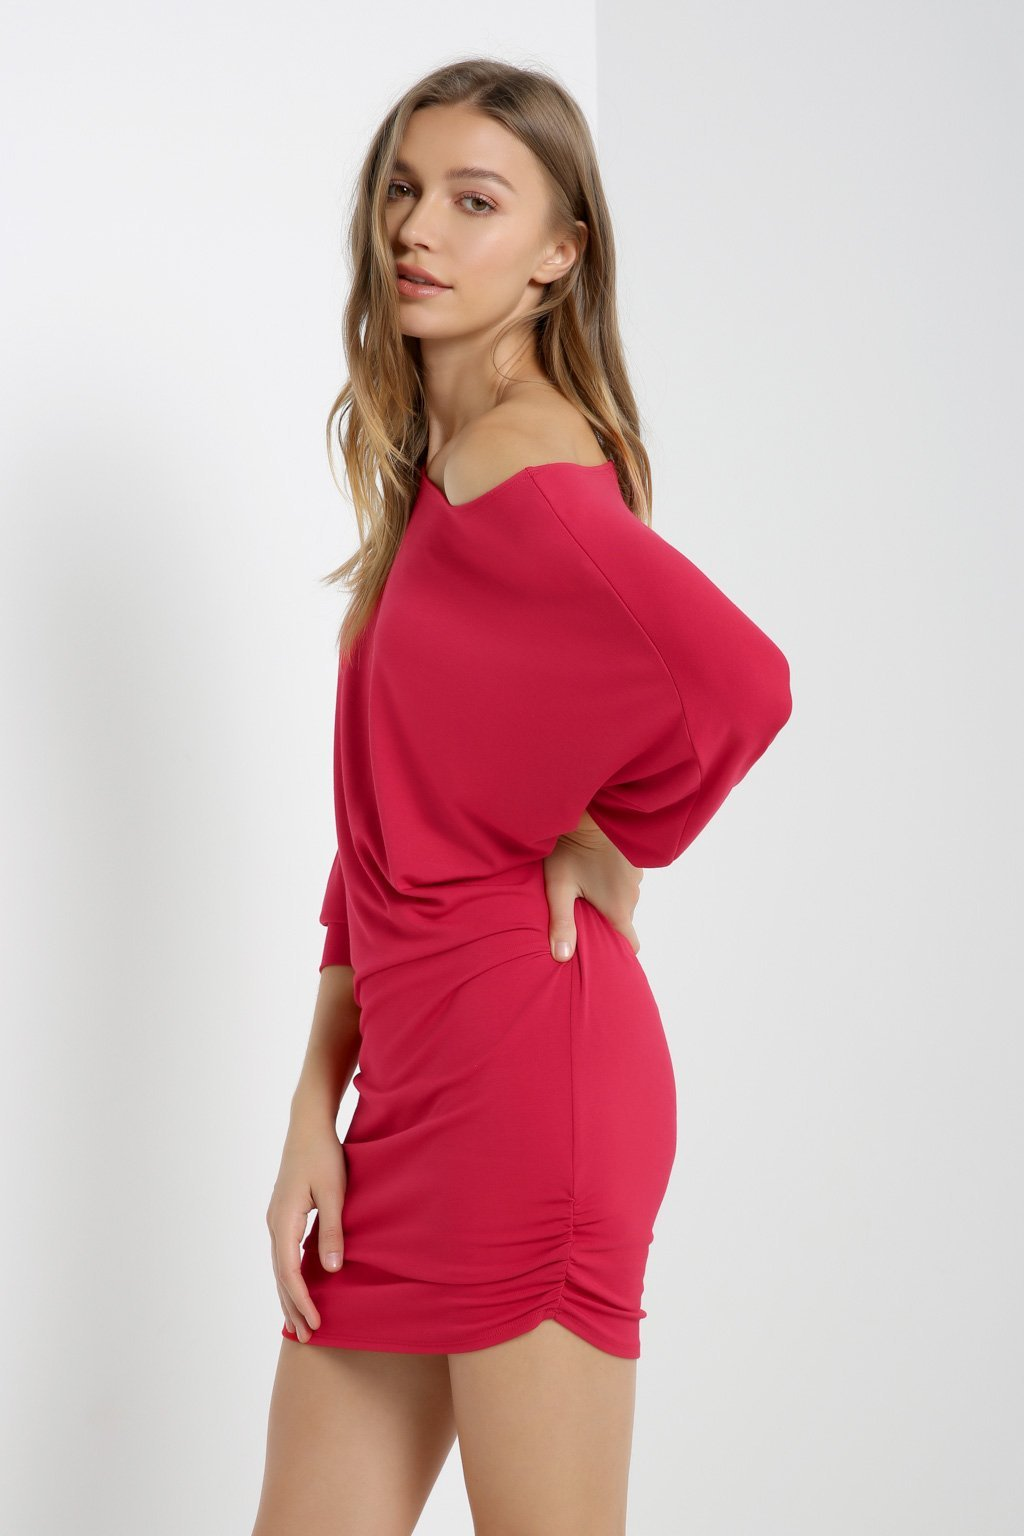 Poshsquare Dress S / Red Dolman Sleeve Ruched Dress